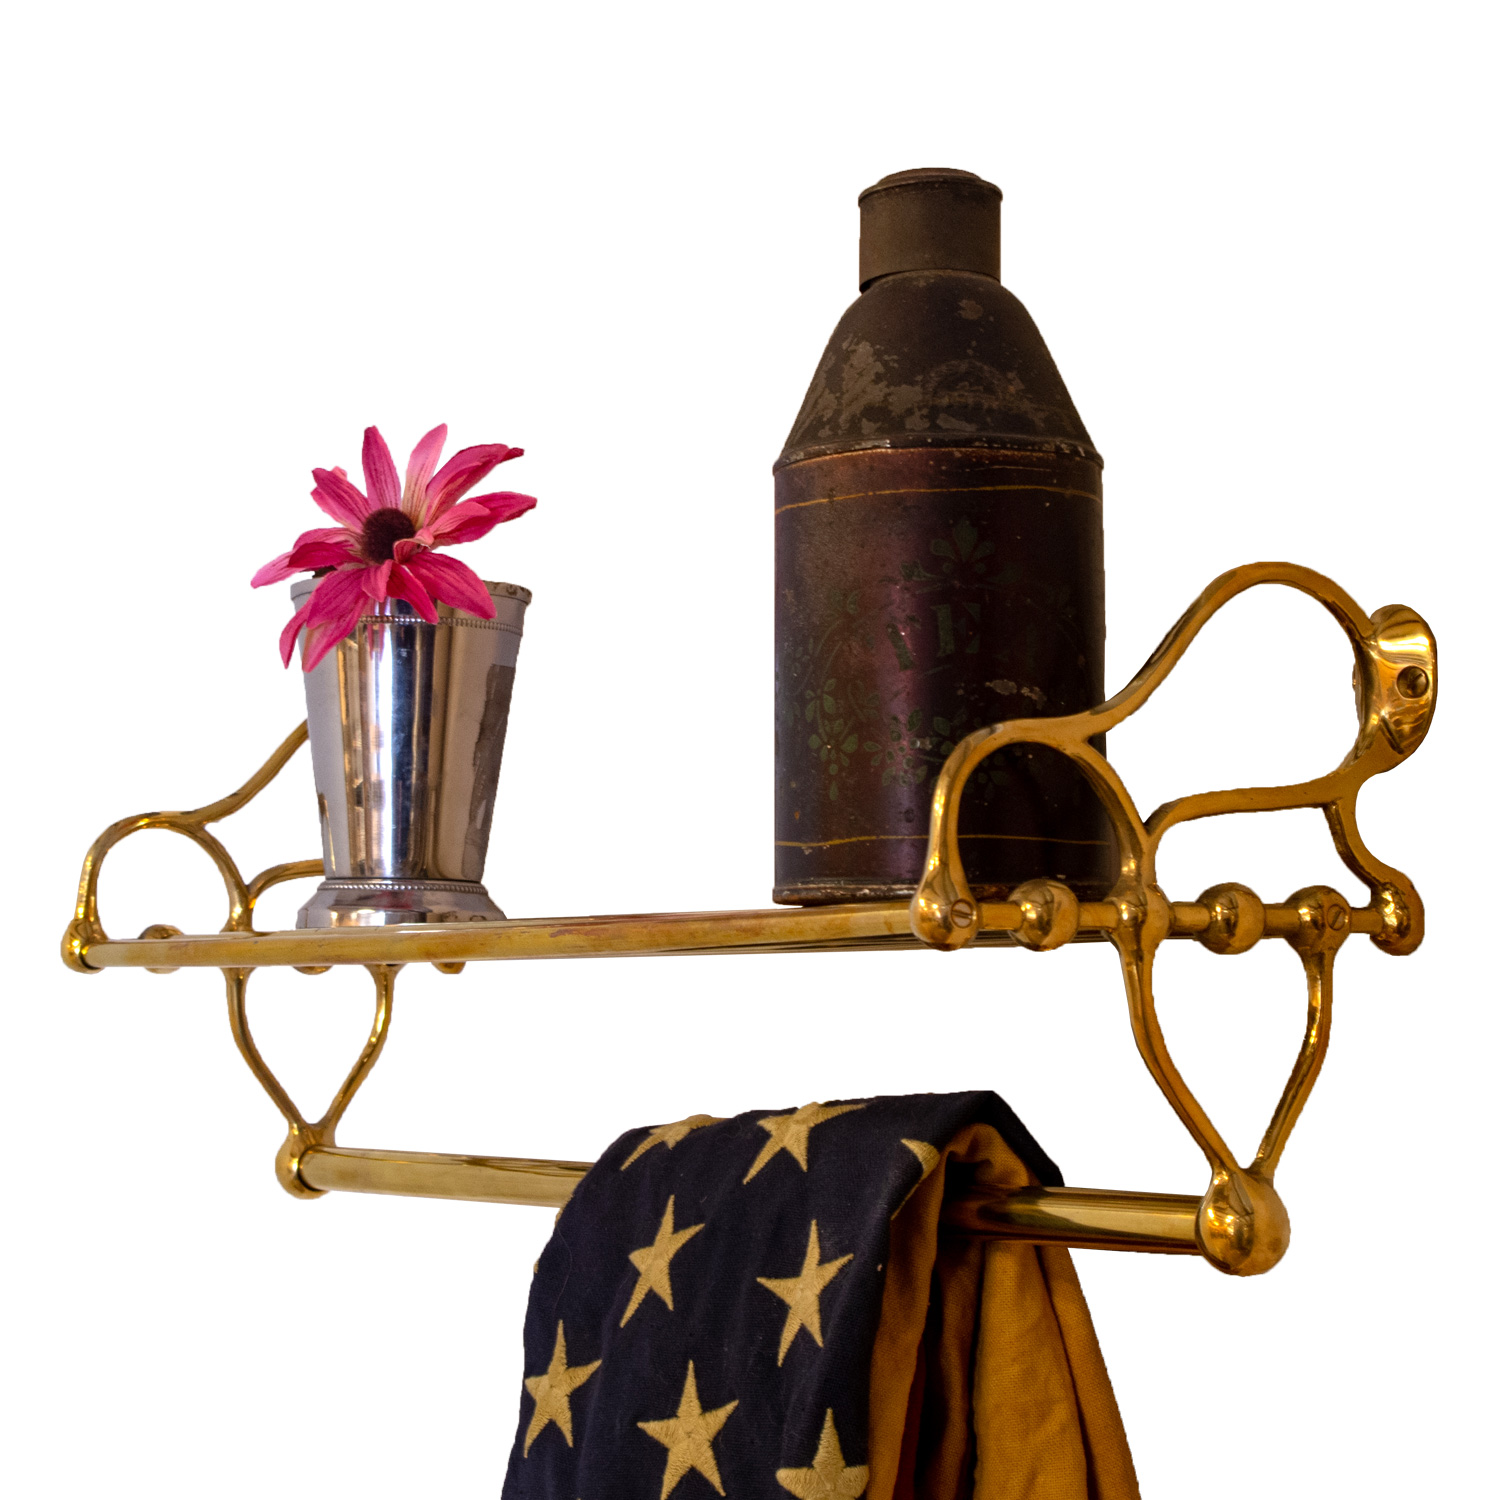 Reproduction Vintage Bath Towels: Polished Brass Rack For Bathroom With Towel Rail And Shelf